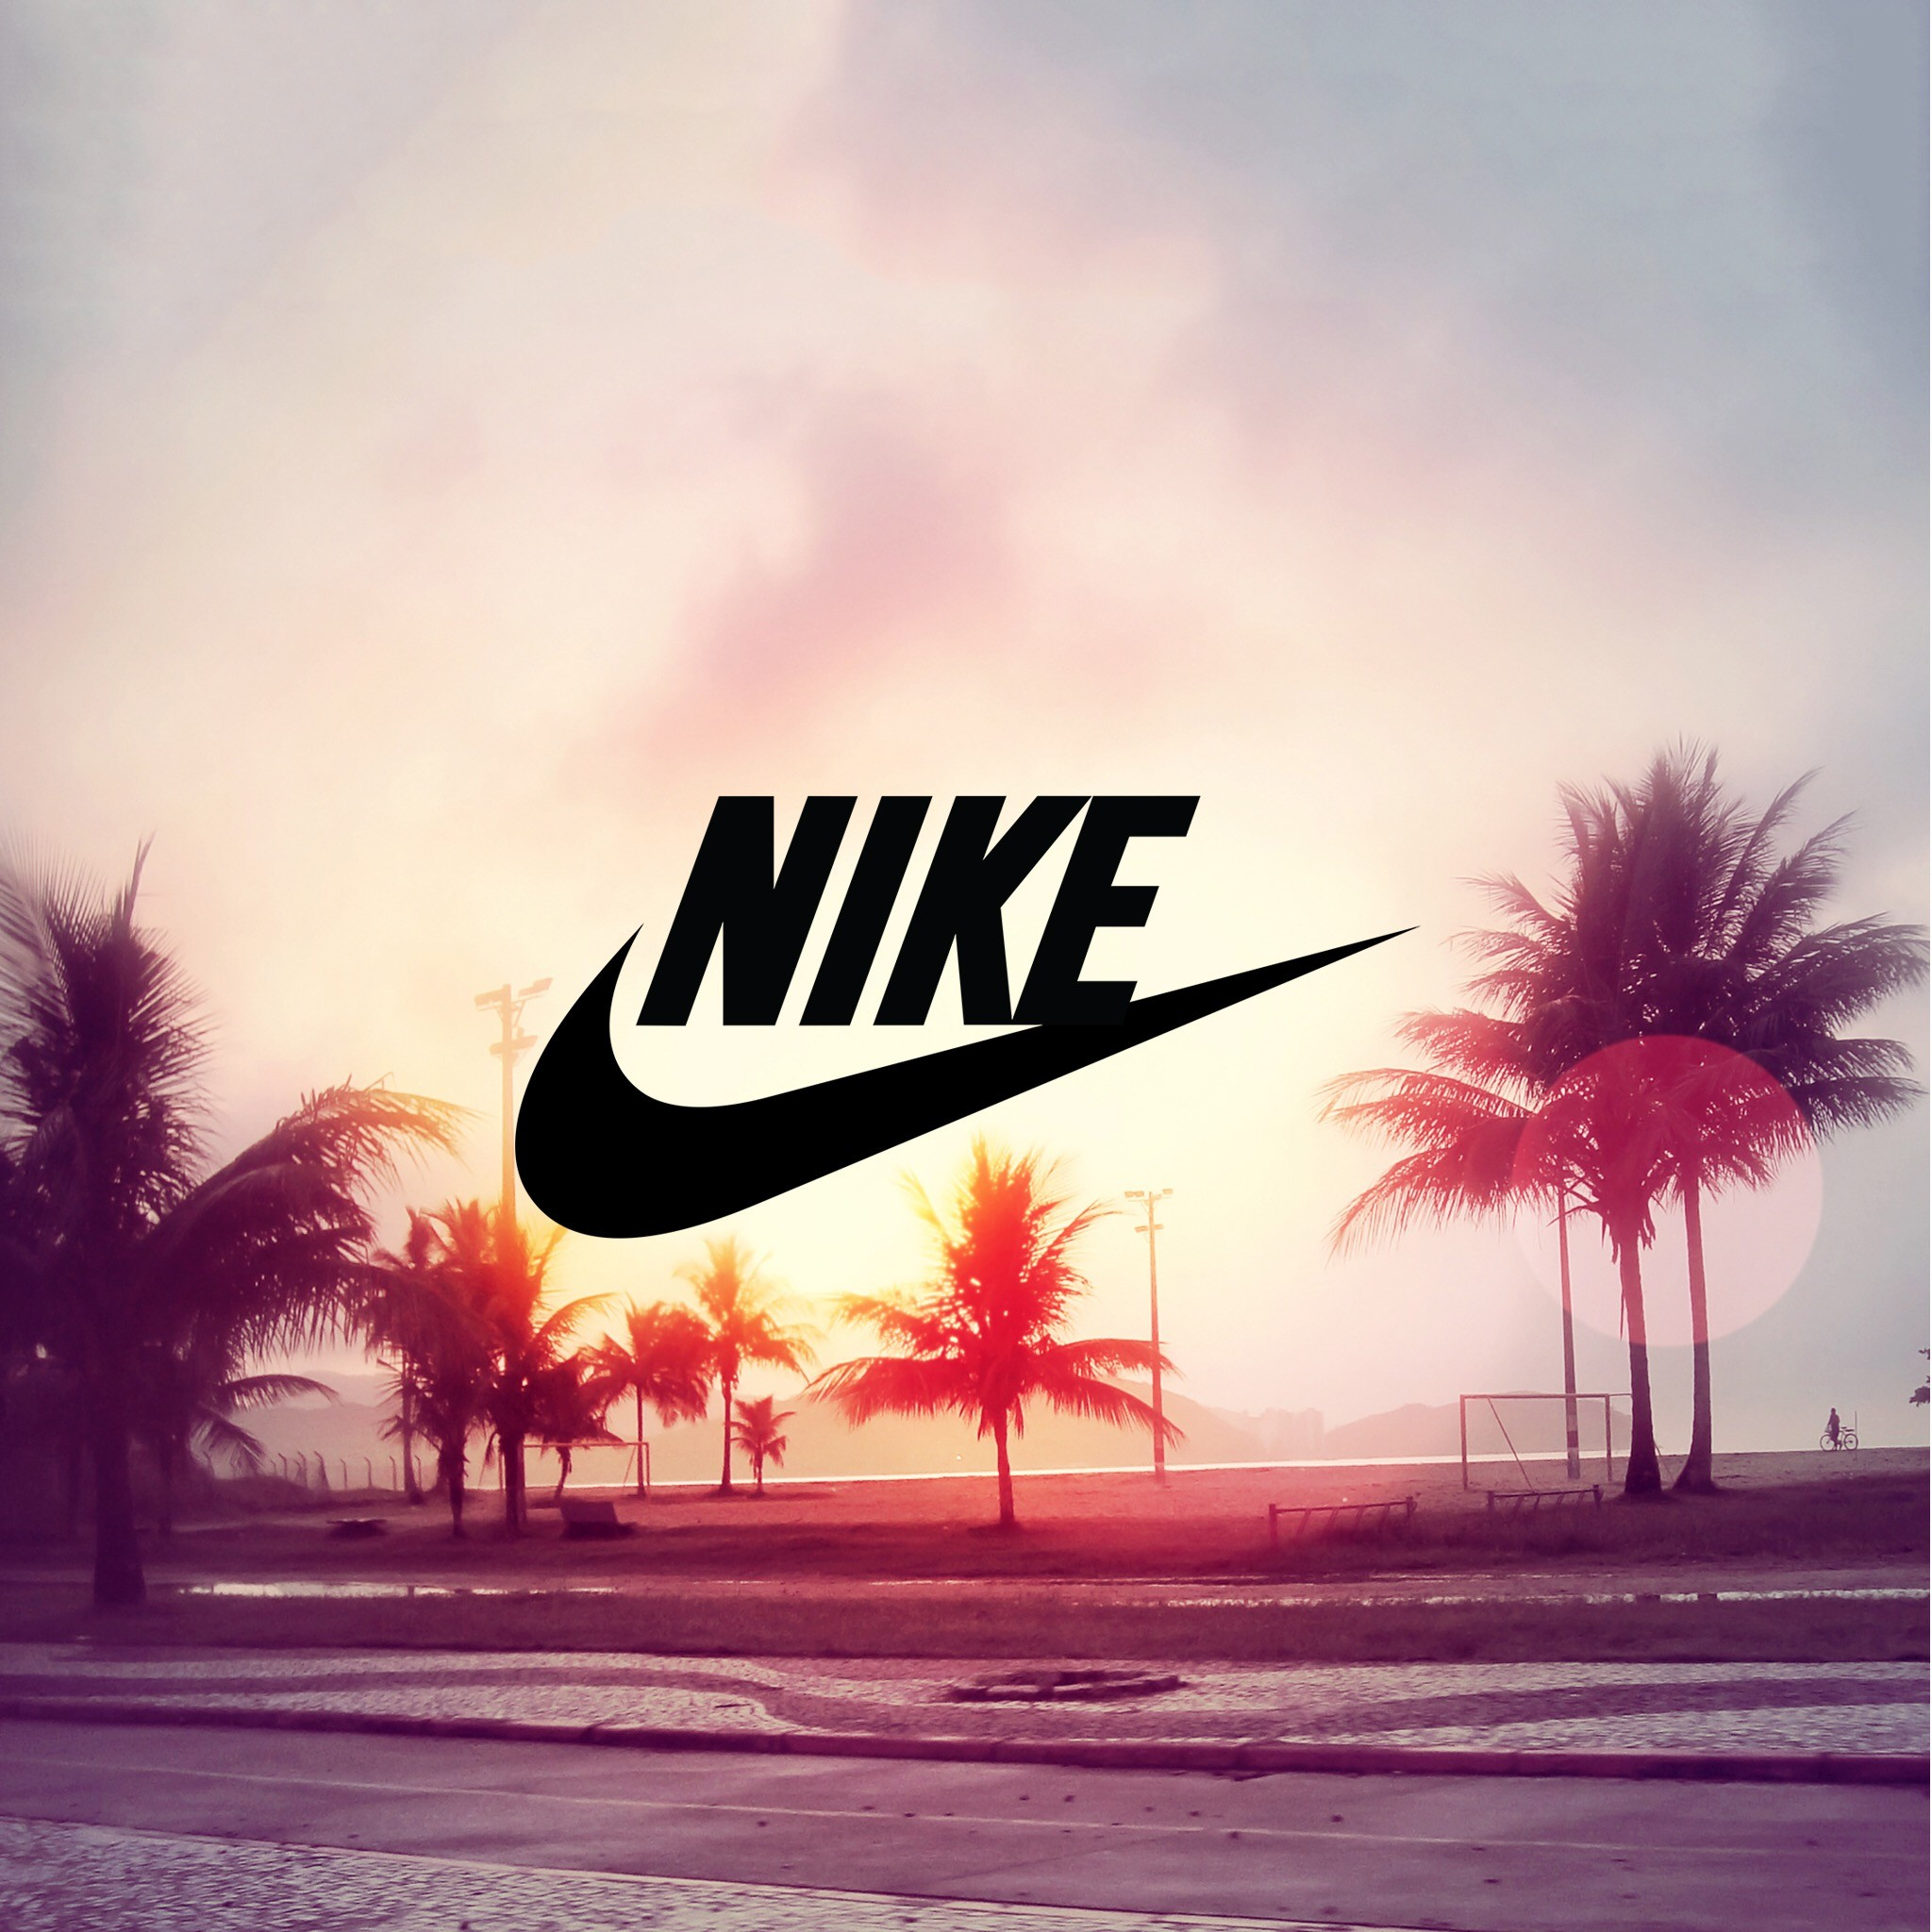 Football Hd Wallpapers For Iphone Nike Wallpapers 2018 66 Images